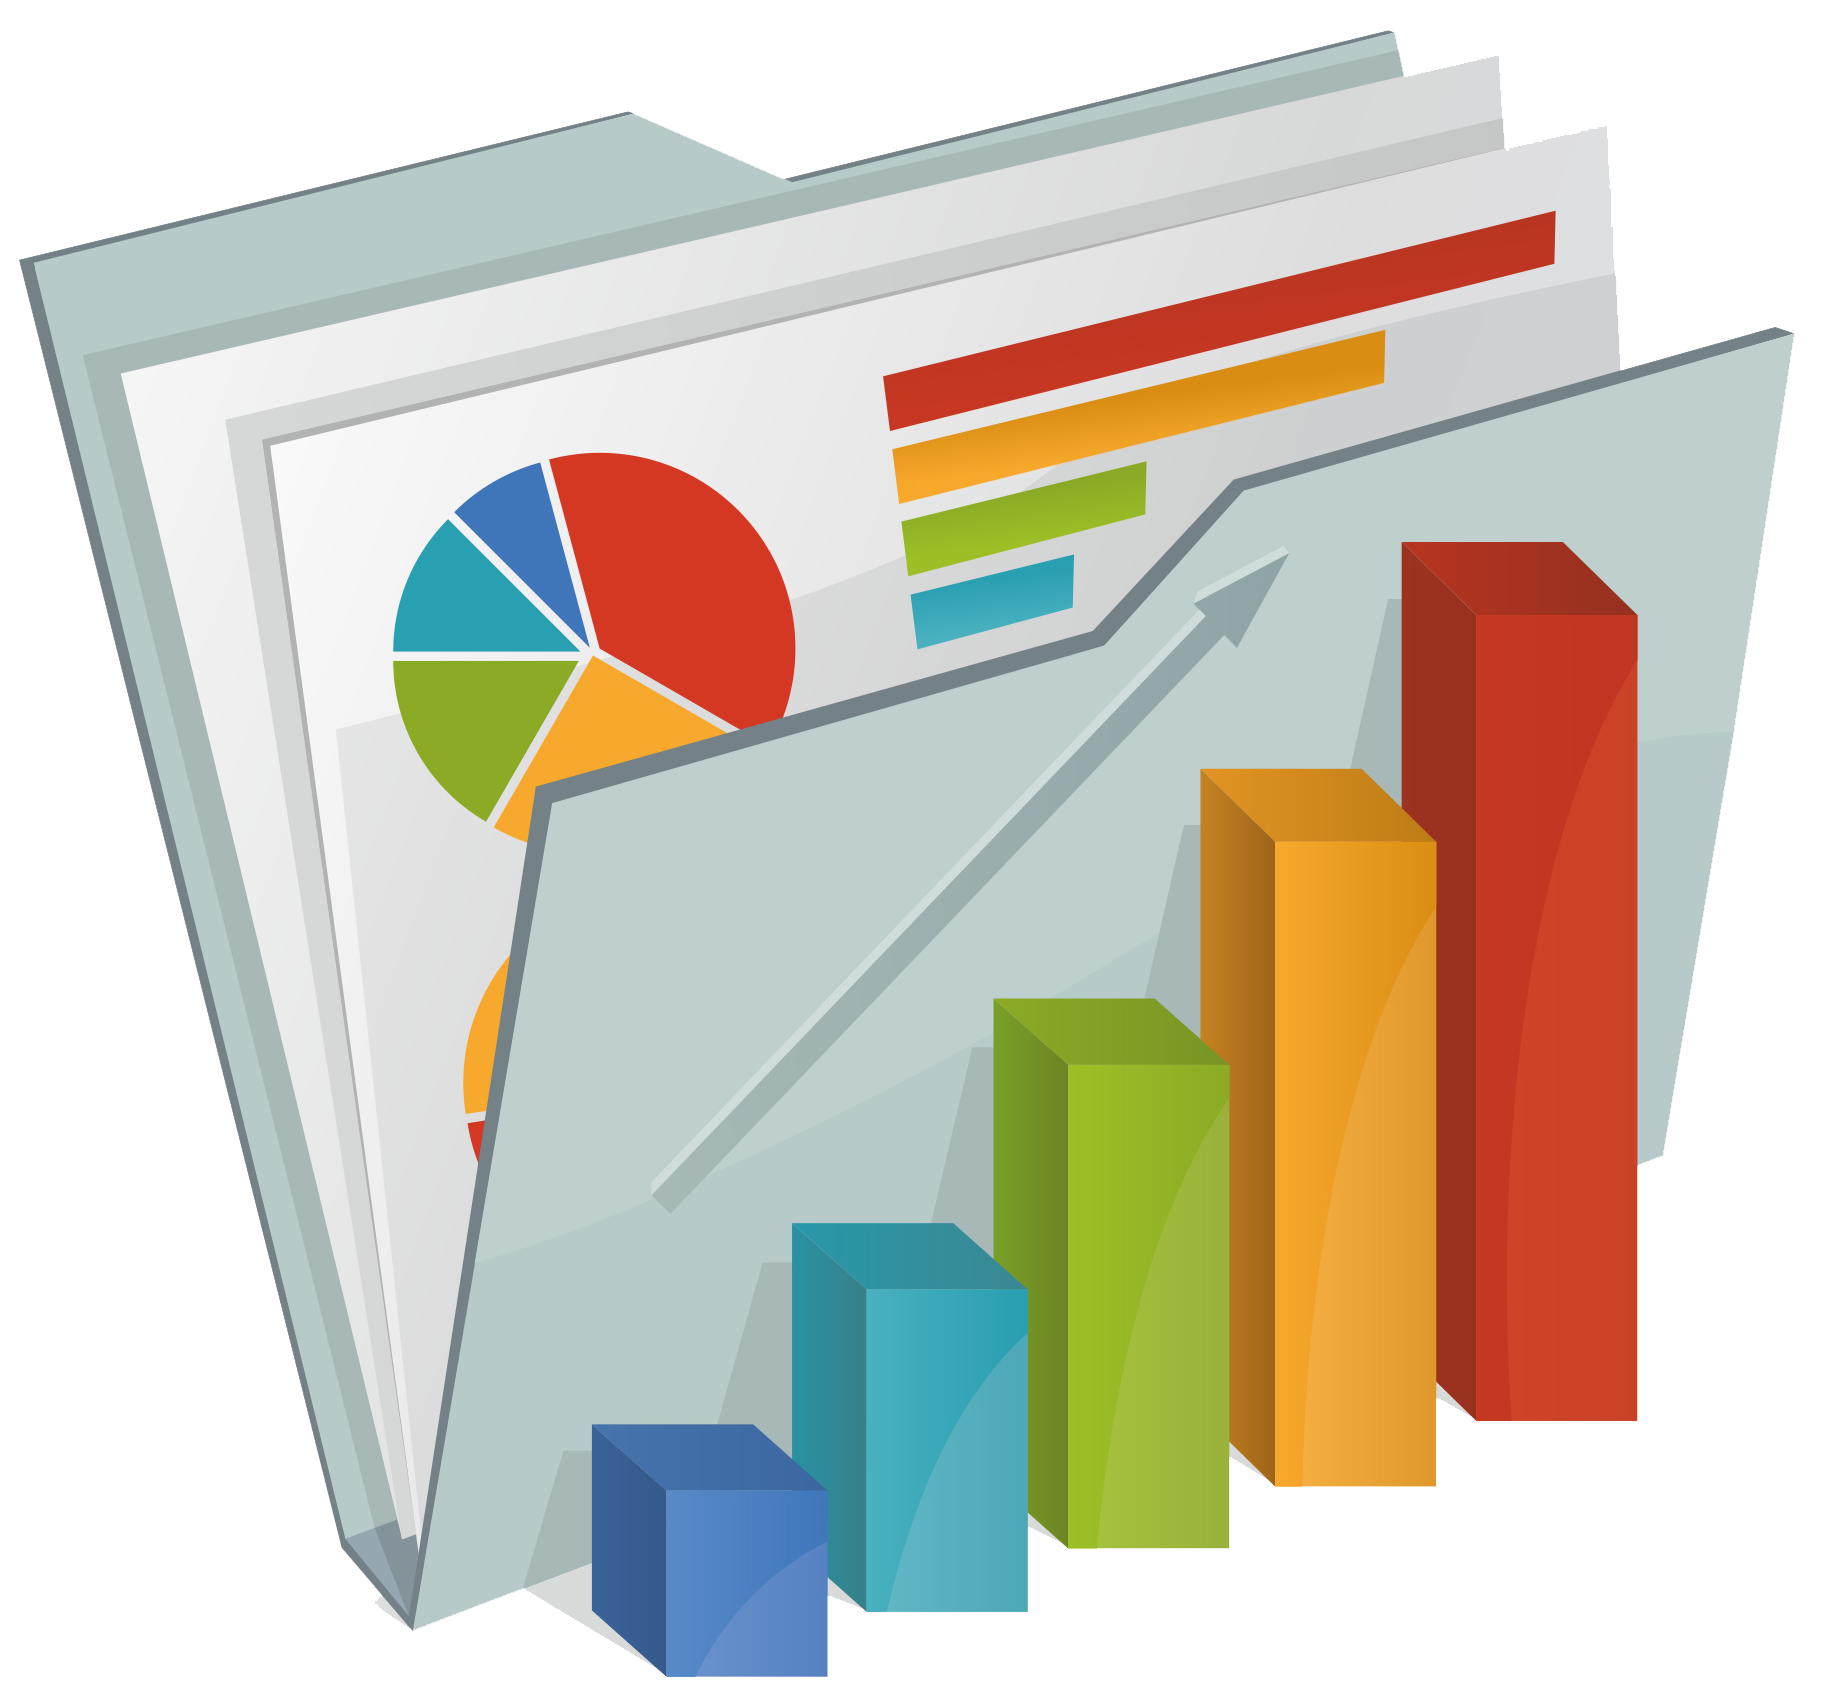 Marketing clipart system analysis, Marketing system analysis Transparent  FREE for download on WebStockReview 2020